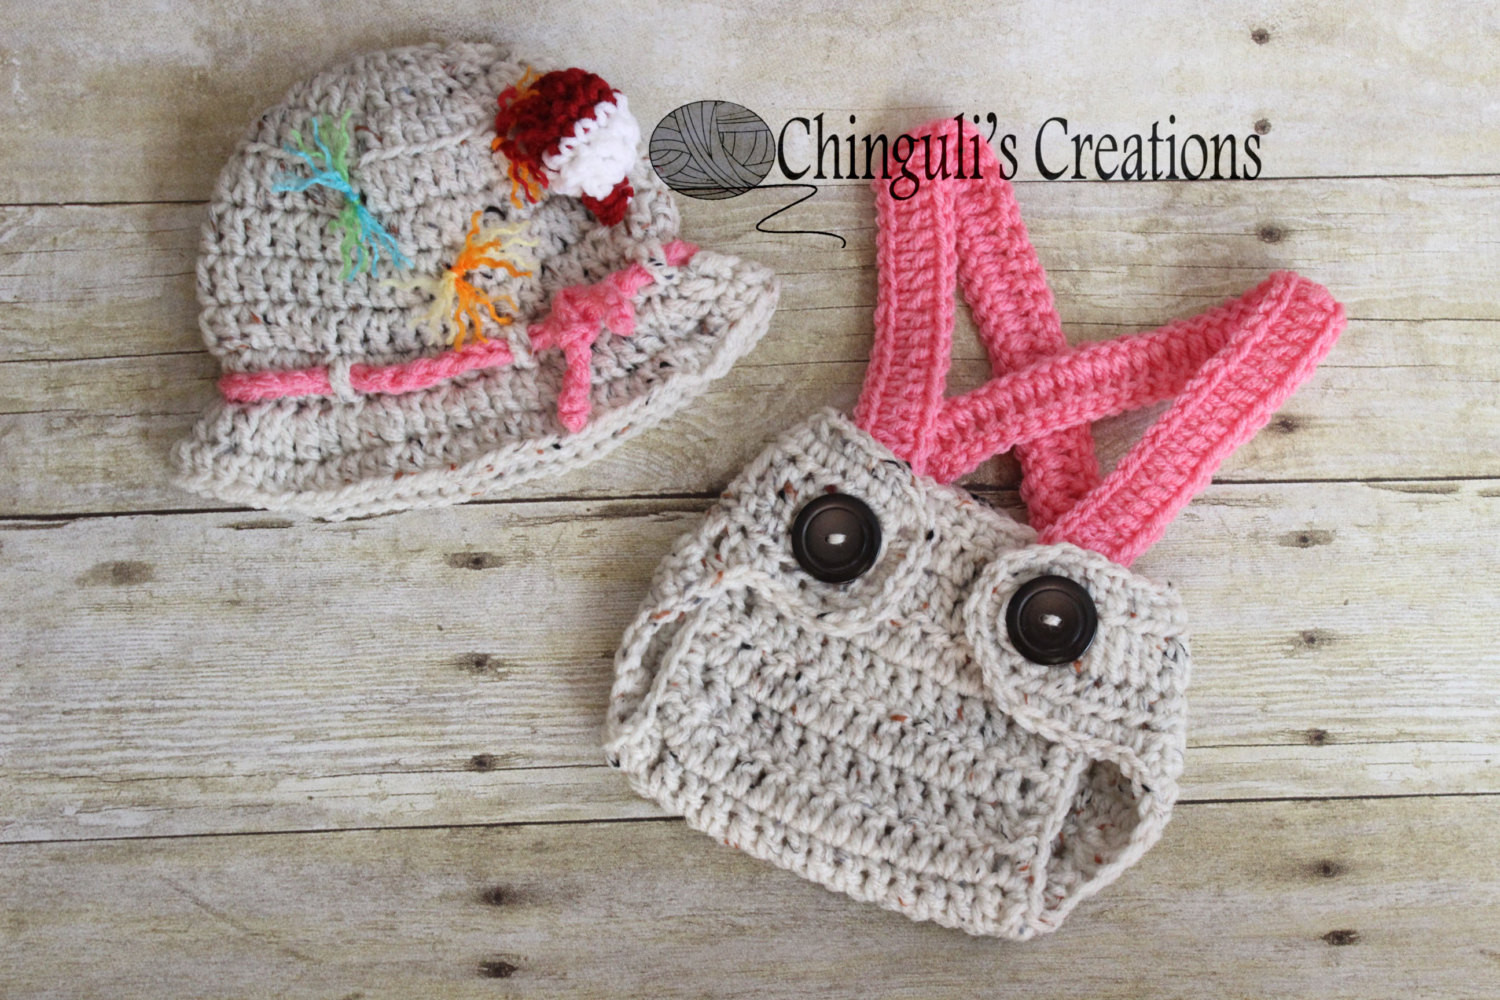 Crochet Outfit Luxury Baby Girl Fisherman Crochet Outfit Hat Gone Fishing Hat Of Gorgeous 41 Ideas Crochet Outfit